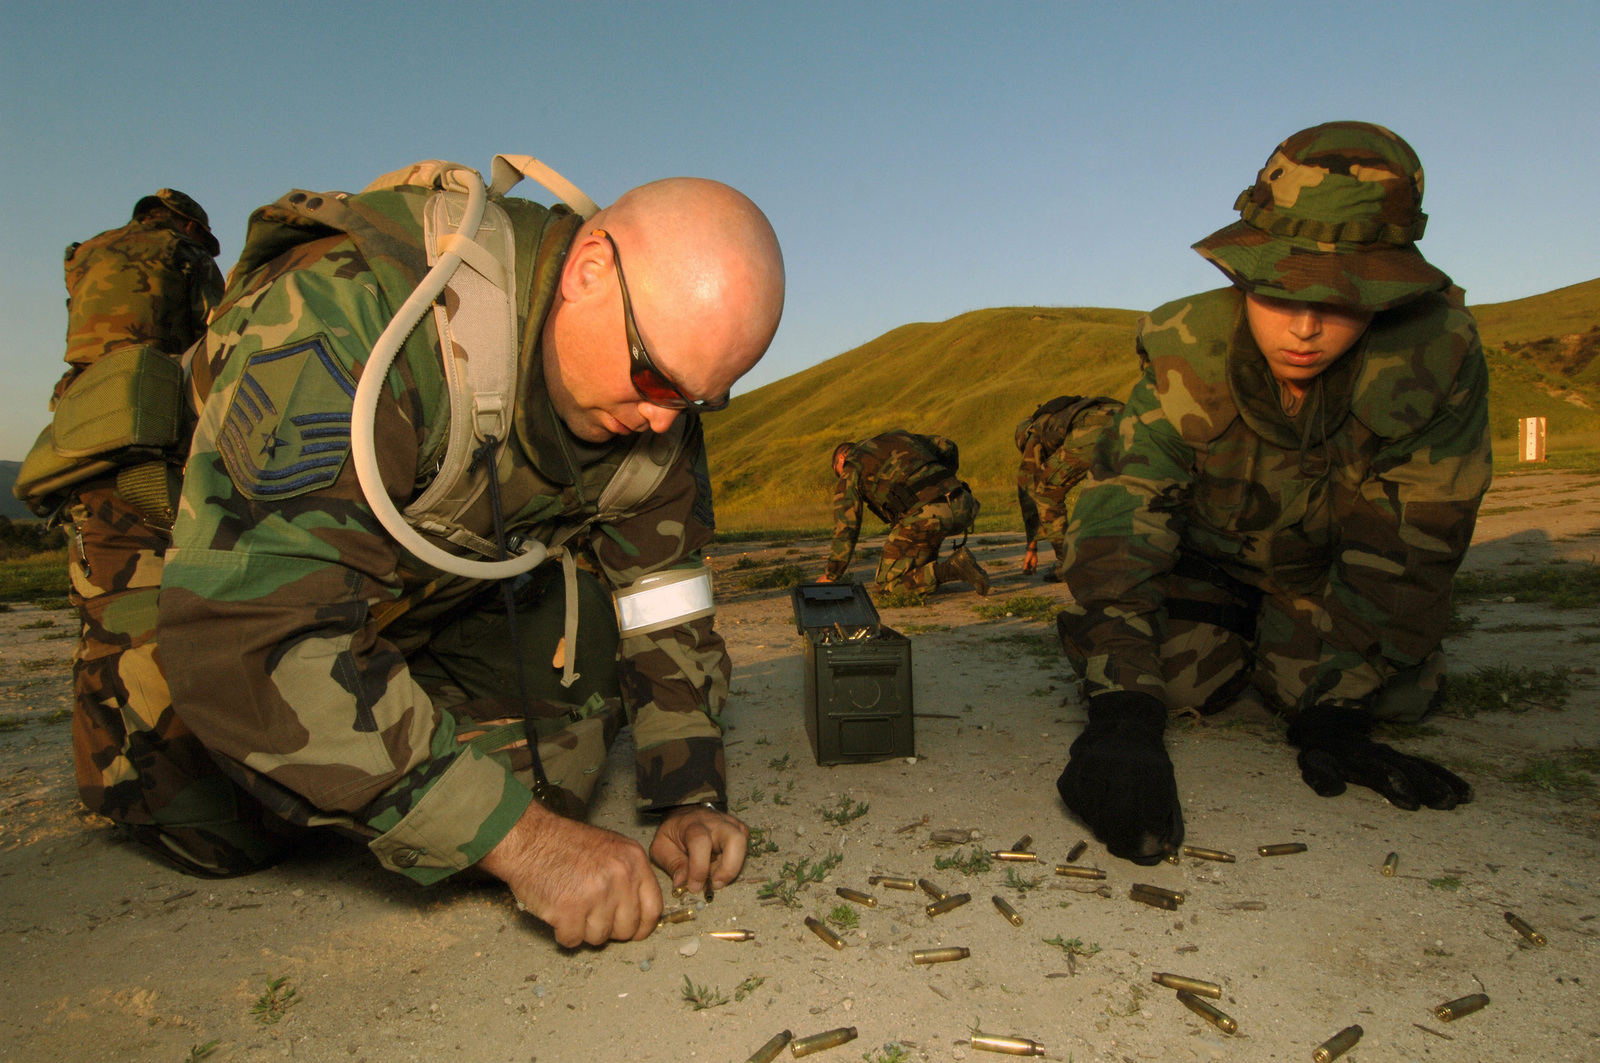 US Air Force (USAF) MASTER Sergeant (MSGT) Richard Inman (left) and US Navy (USN) Journalist Second Class (JO2) Brooke Armato pick up brass shell casings after a successful joint force weapons exercise conducted at Marine Corps Base (MCB) Camp Pendleton, California (CA). The bi-annual Quick Shot field exercise enhances the combat photographers' war fighting capabilities, including combat documentation, and a variety of tactical skills. Conducting Joint Operations with Air Force Combat Camera is the primary focus of this exercise